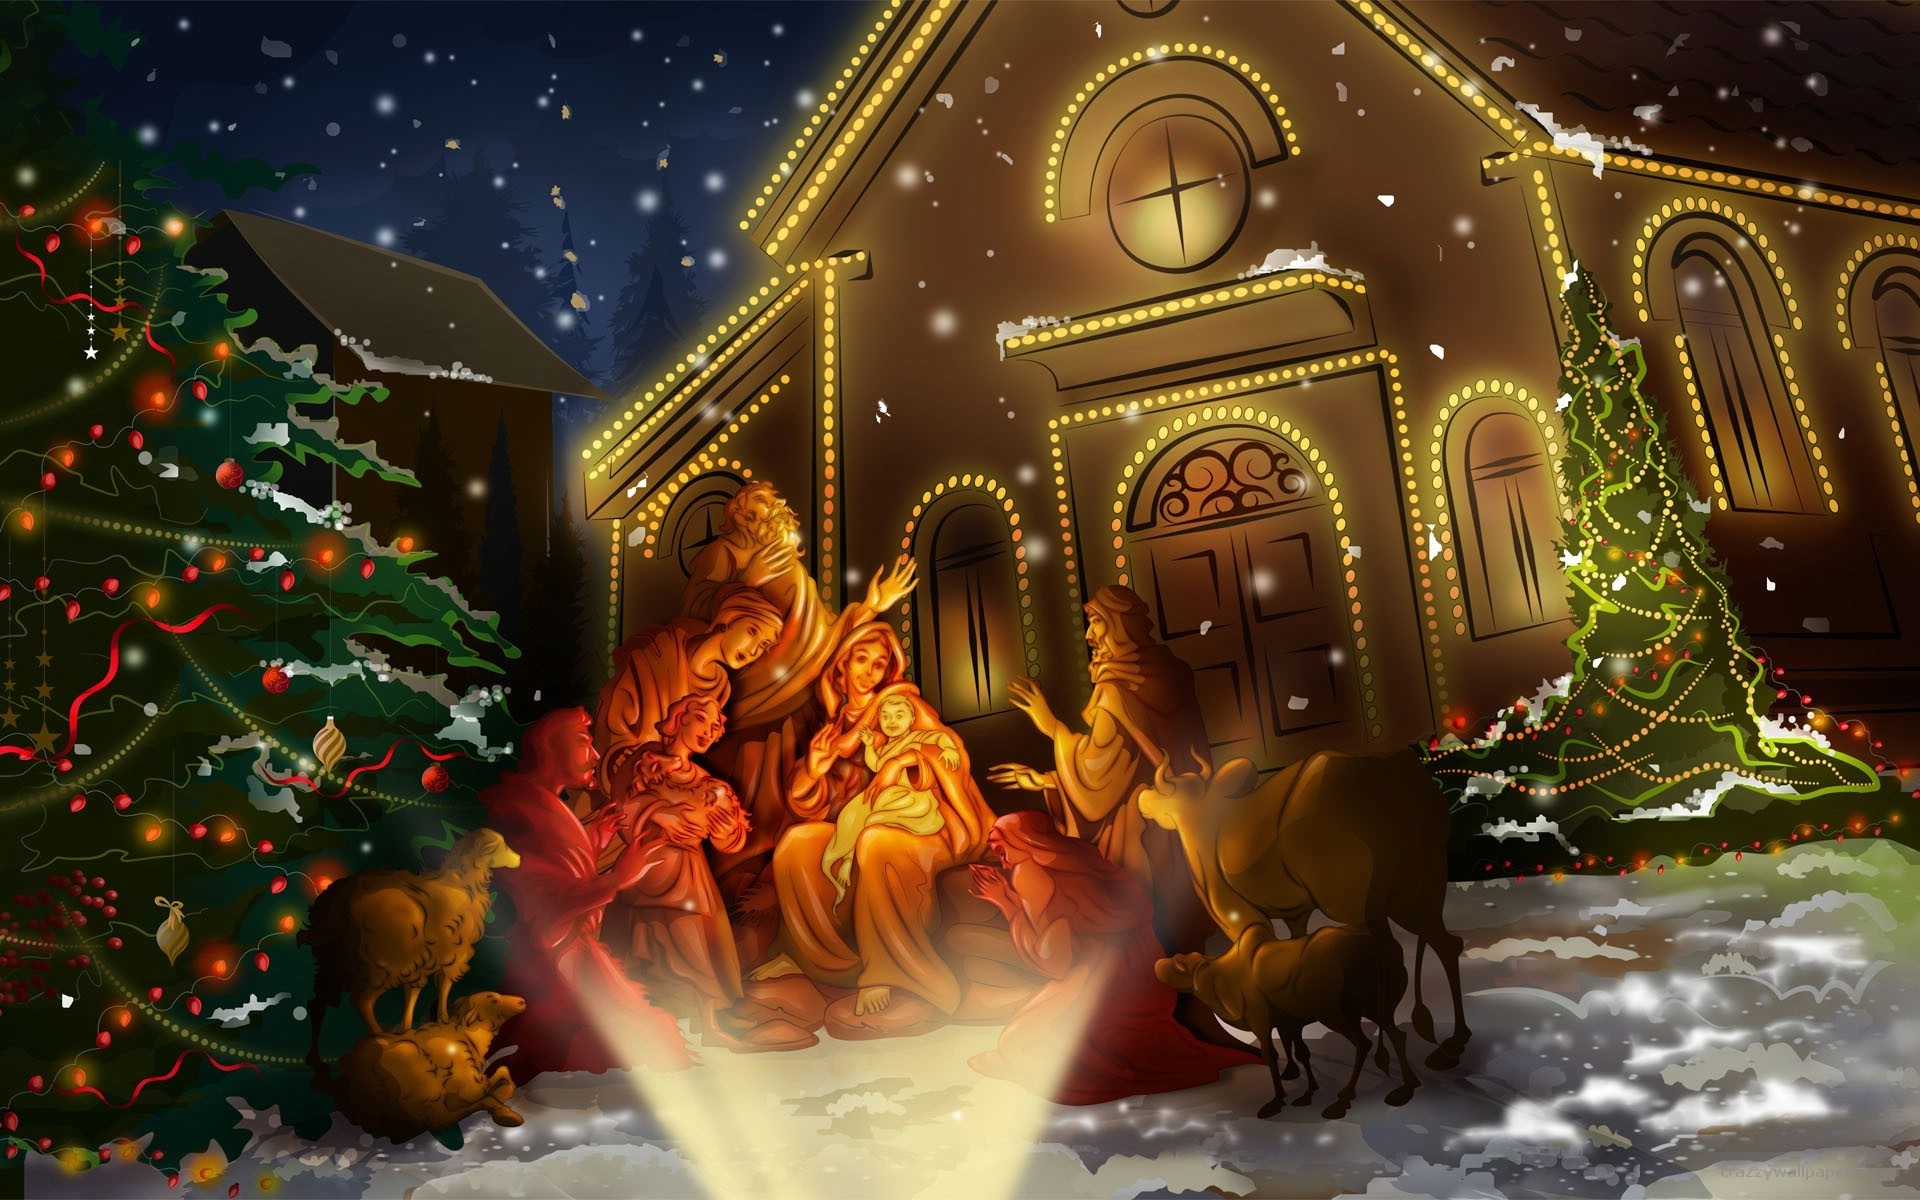 spirit of christmas festival with these beautiful christmas wallpapers .